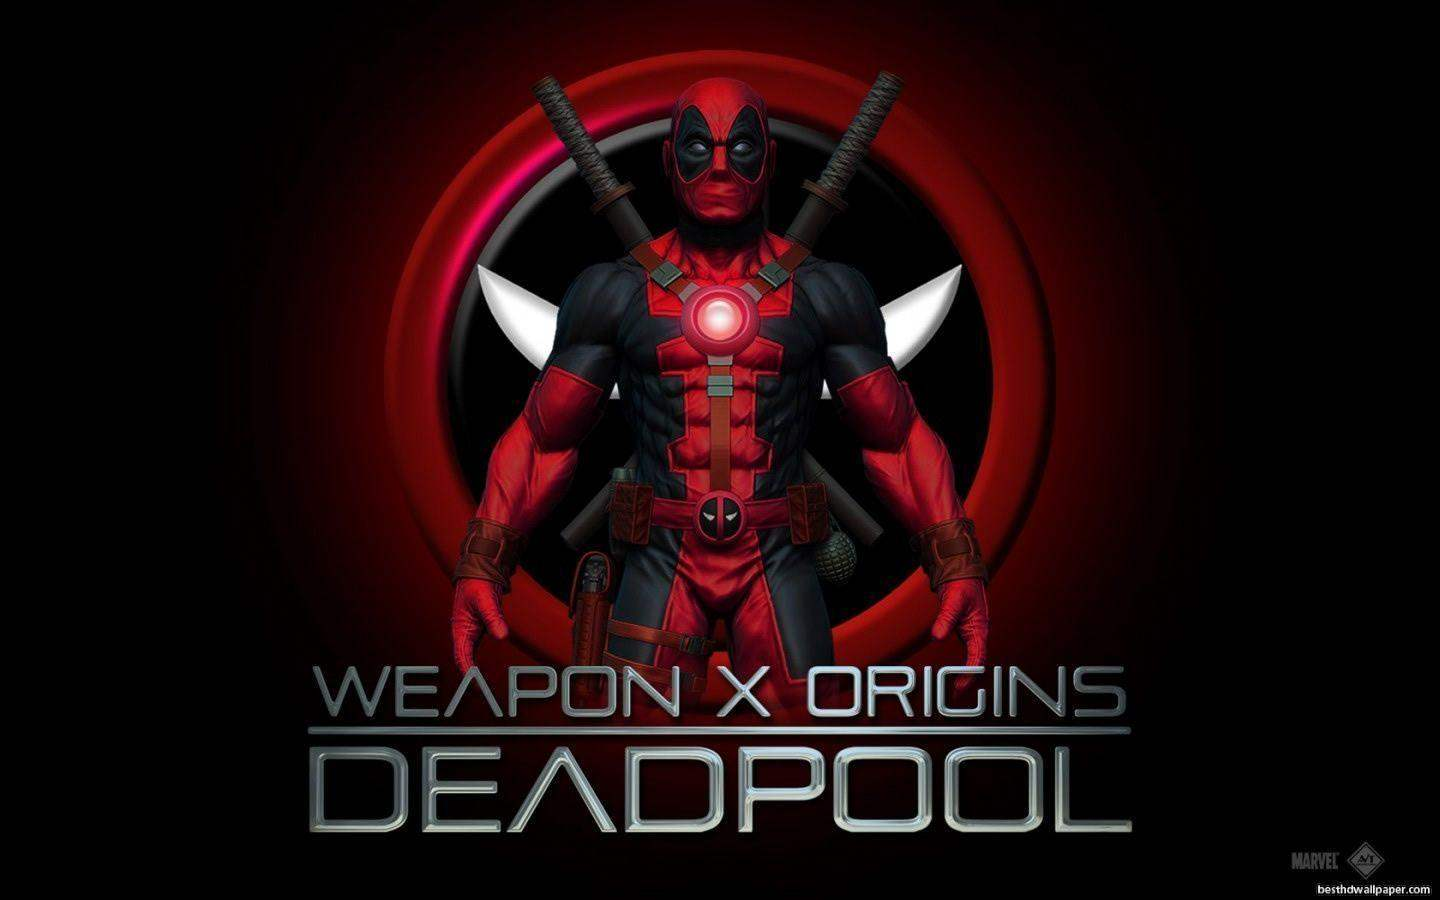 We Tried To Gather The Best HD Deadpool Wallpapers Was There Another Character That You Were Hoping See On One Of These